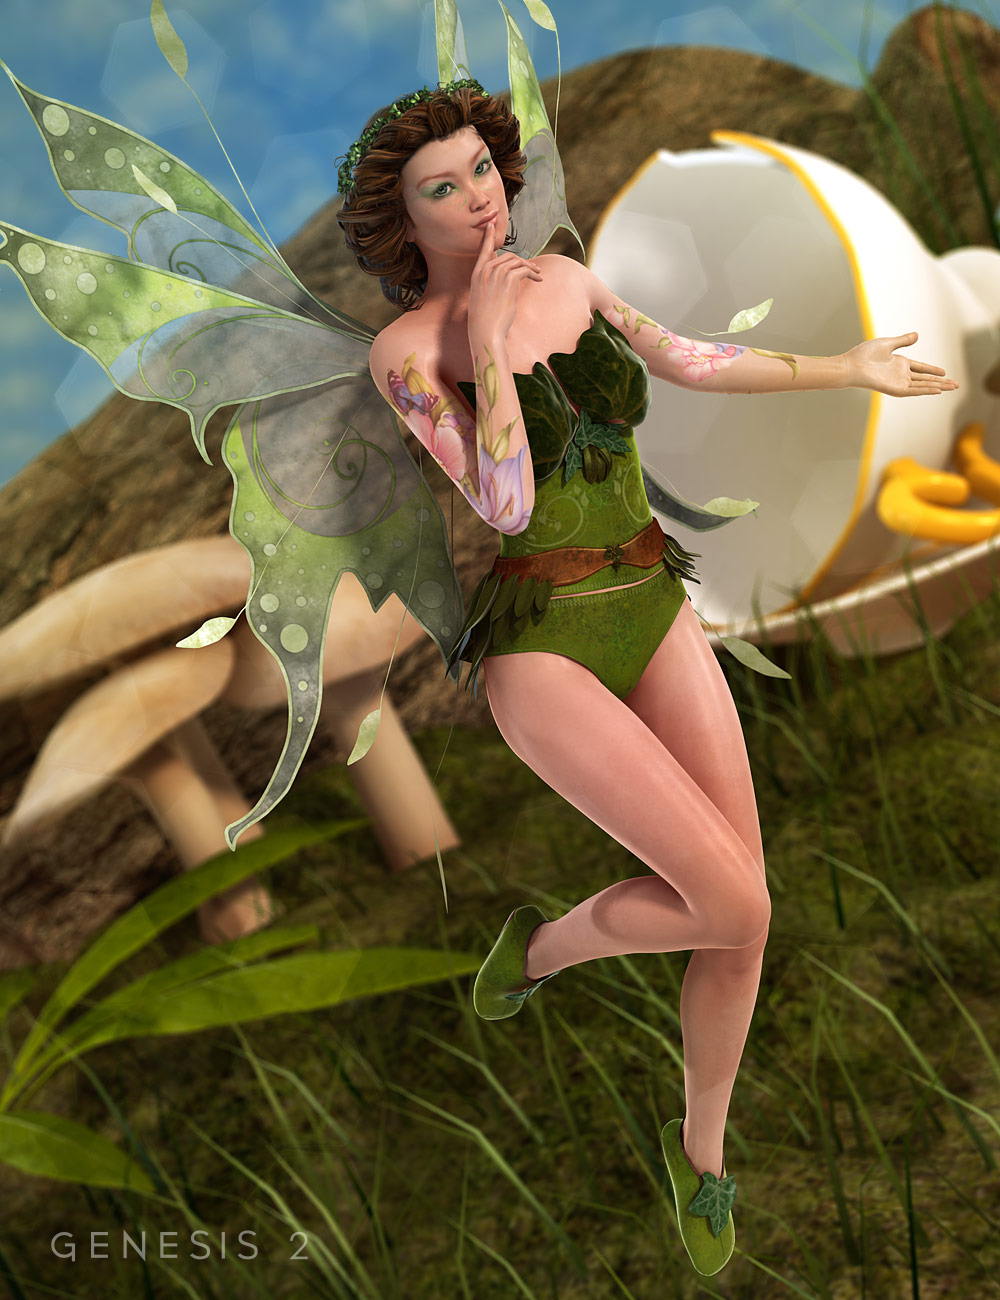 Ivy Dress and Shoes for Genesis 2 Female(s) by: Renderwelten, 3D Models by Daz 3D